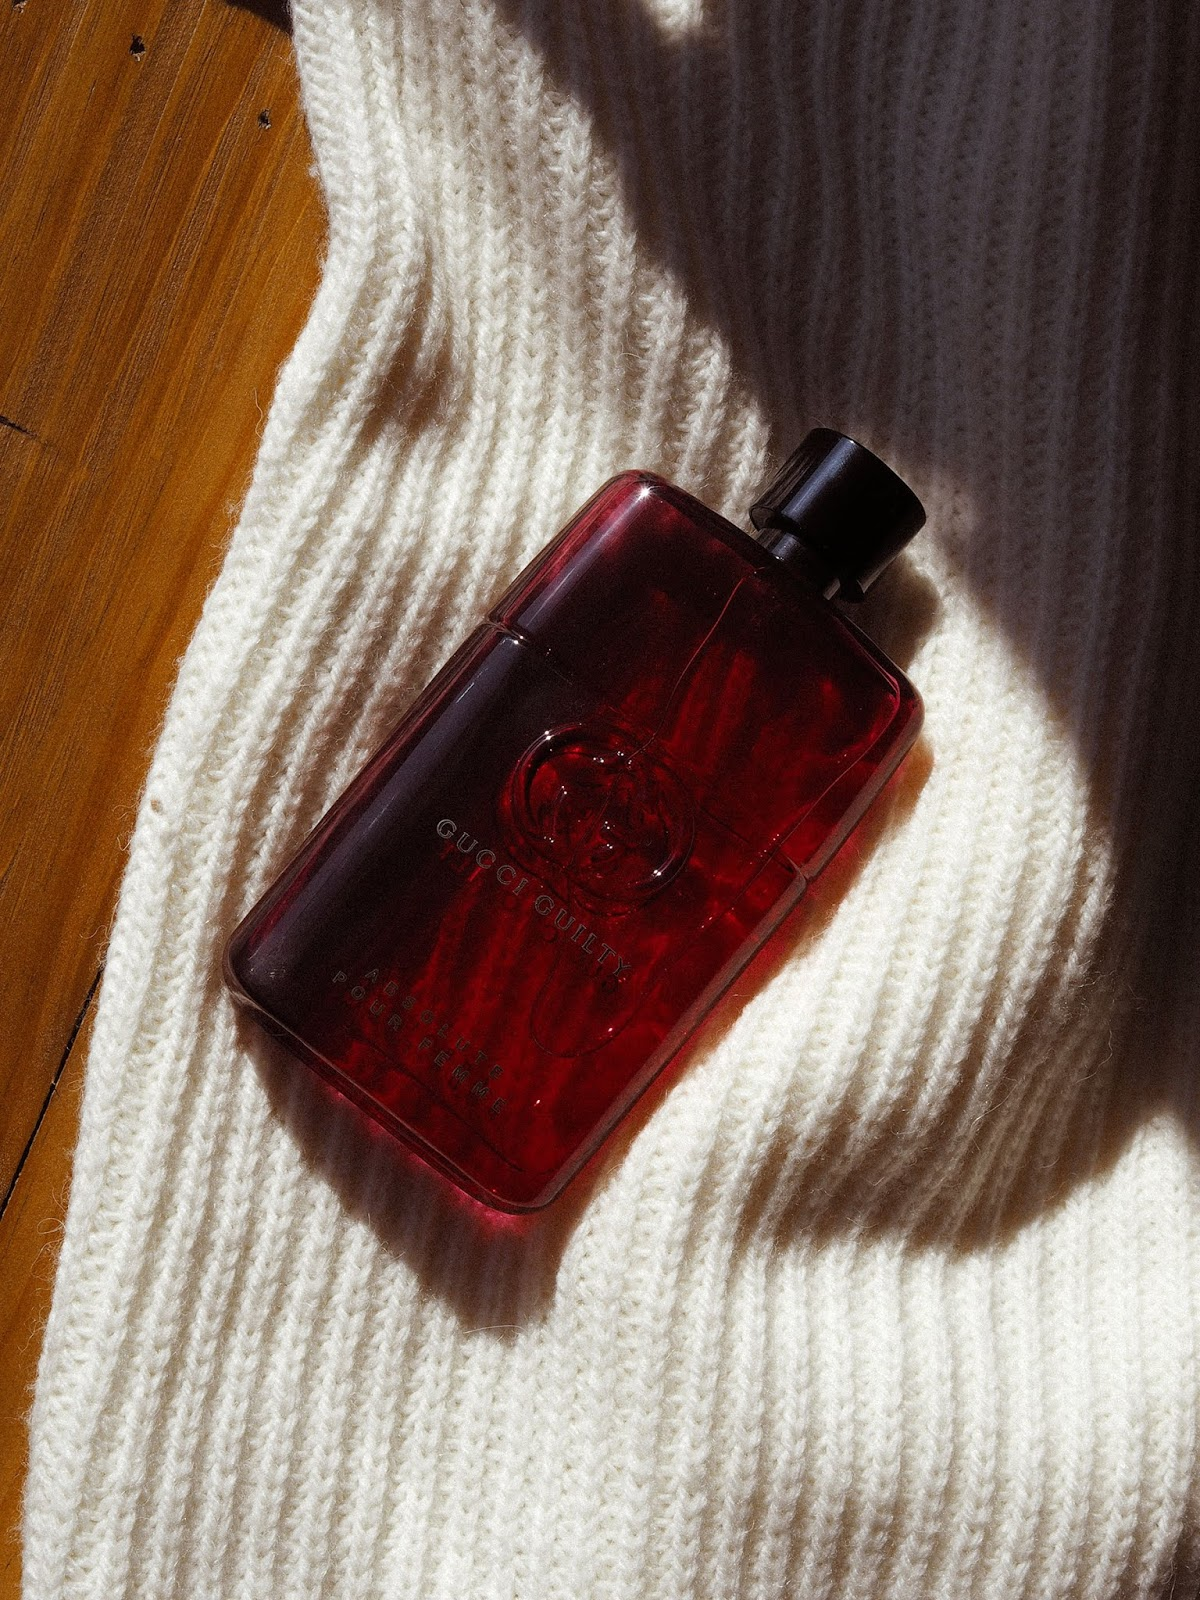 Gucci Guilty Absolute Pour Femme Review